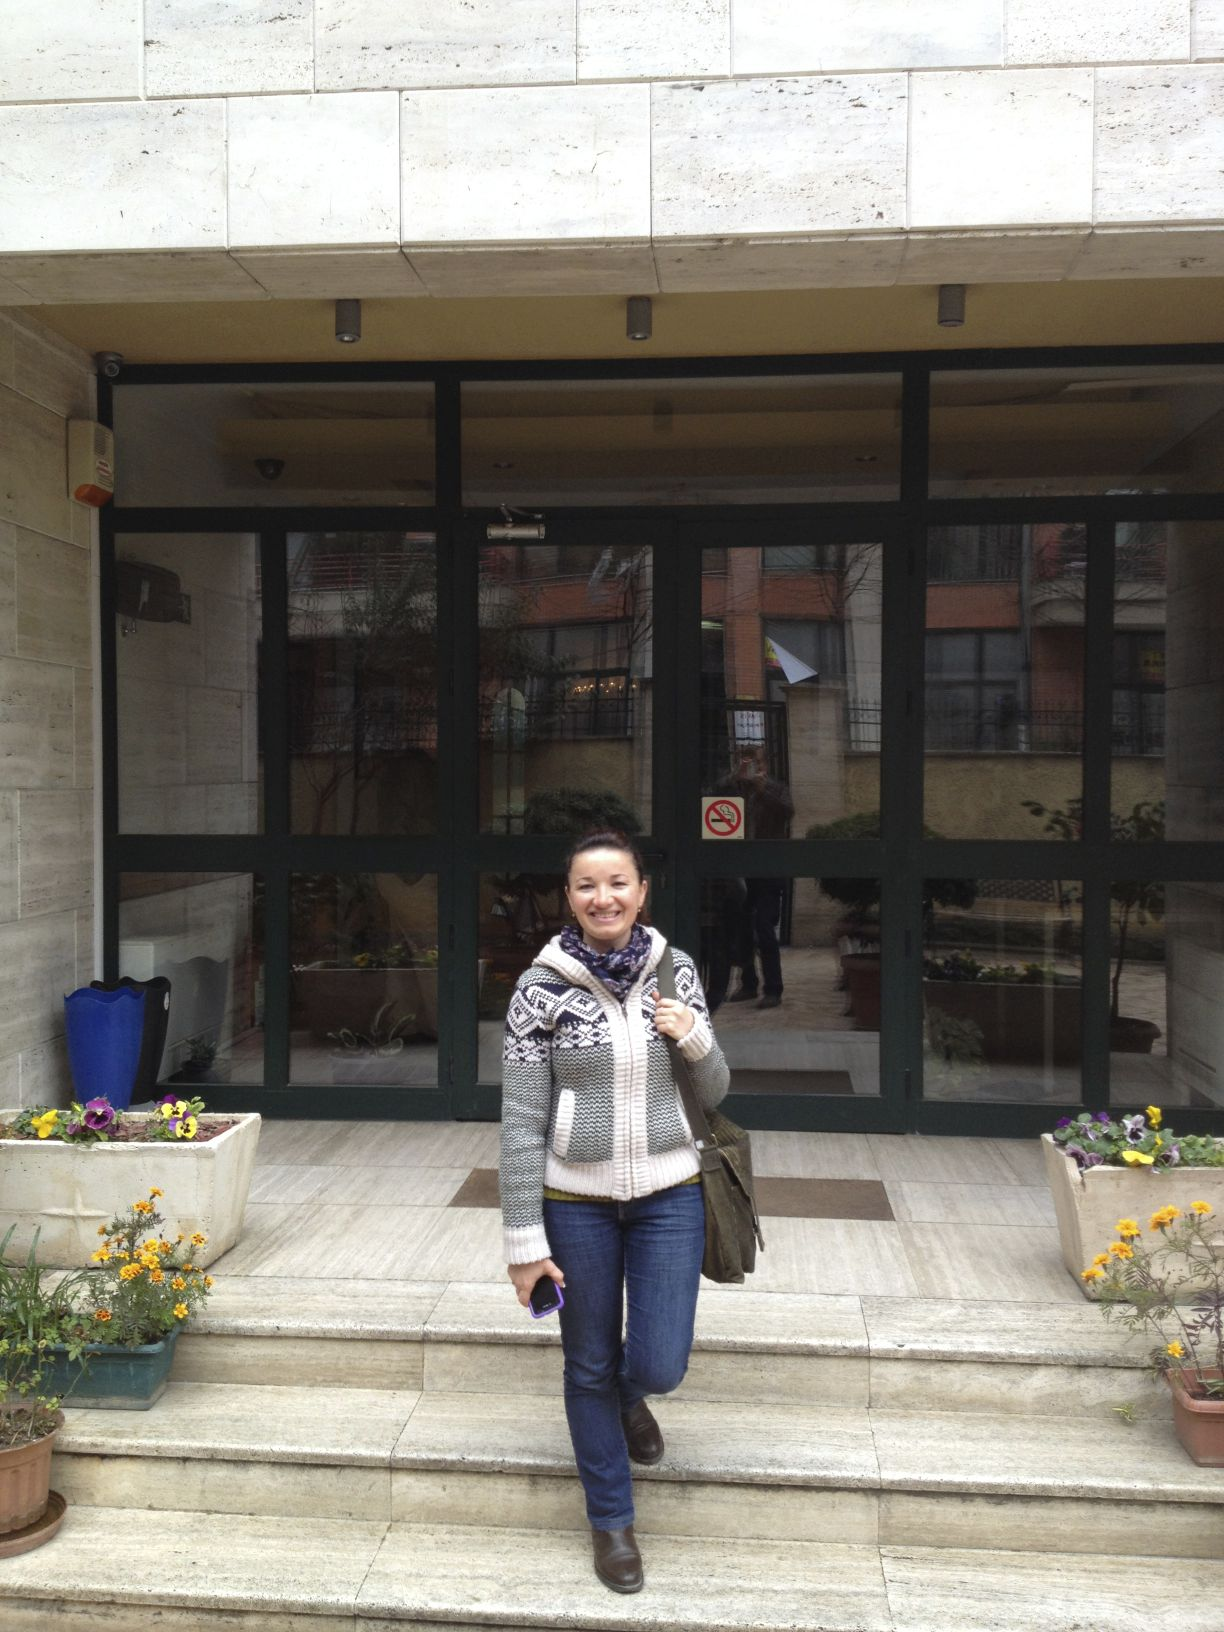 This is a pic of Alfrida standing in front of the Cru headquarters in Tirana. We met Alfrida this past year when she came through NWA and visited New Heights and our weekly global meeting and shared about her ministry in Albania.